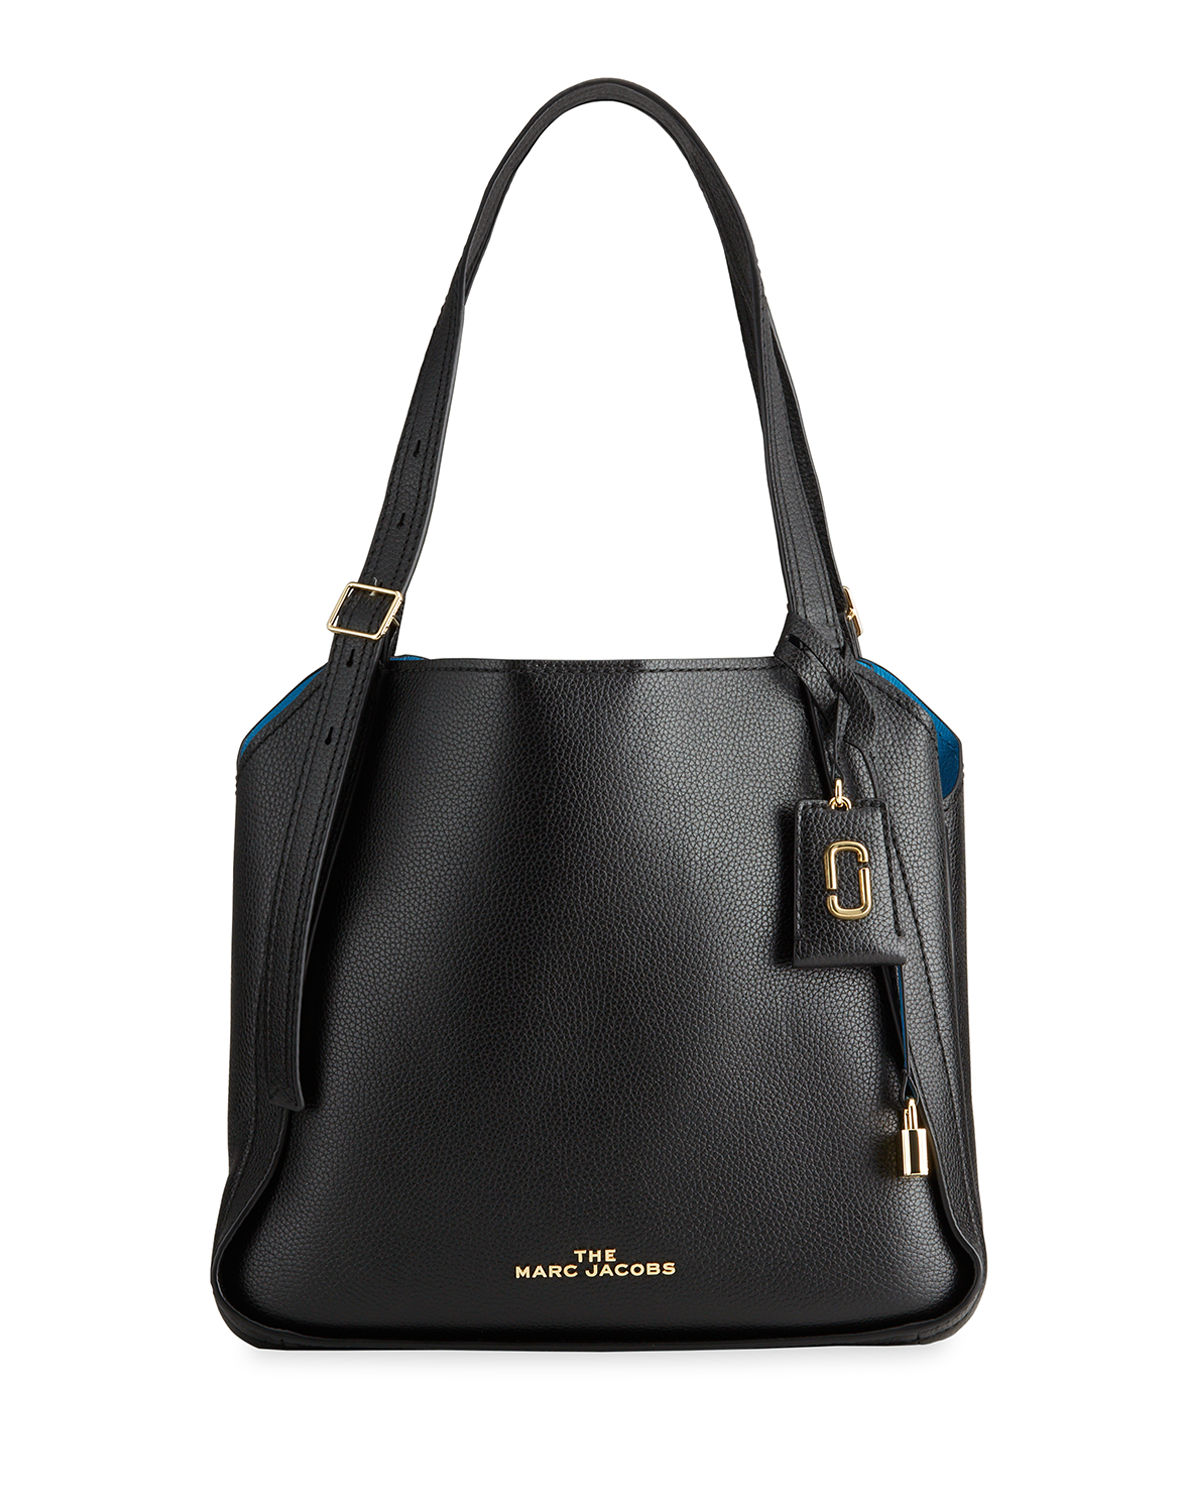 The Director Tote Leather Bag